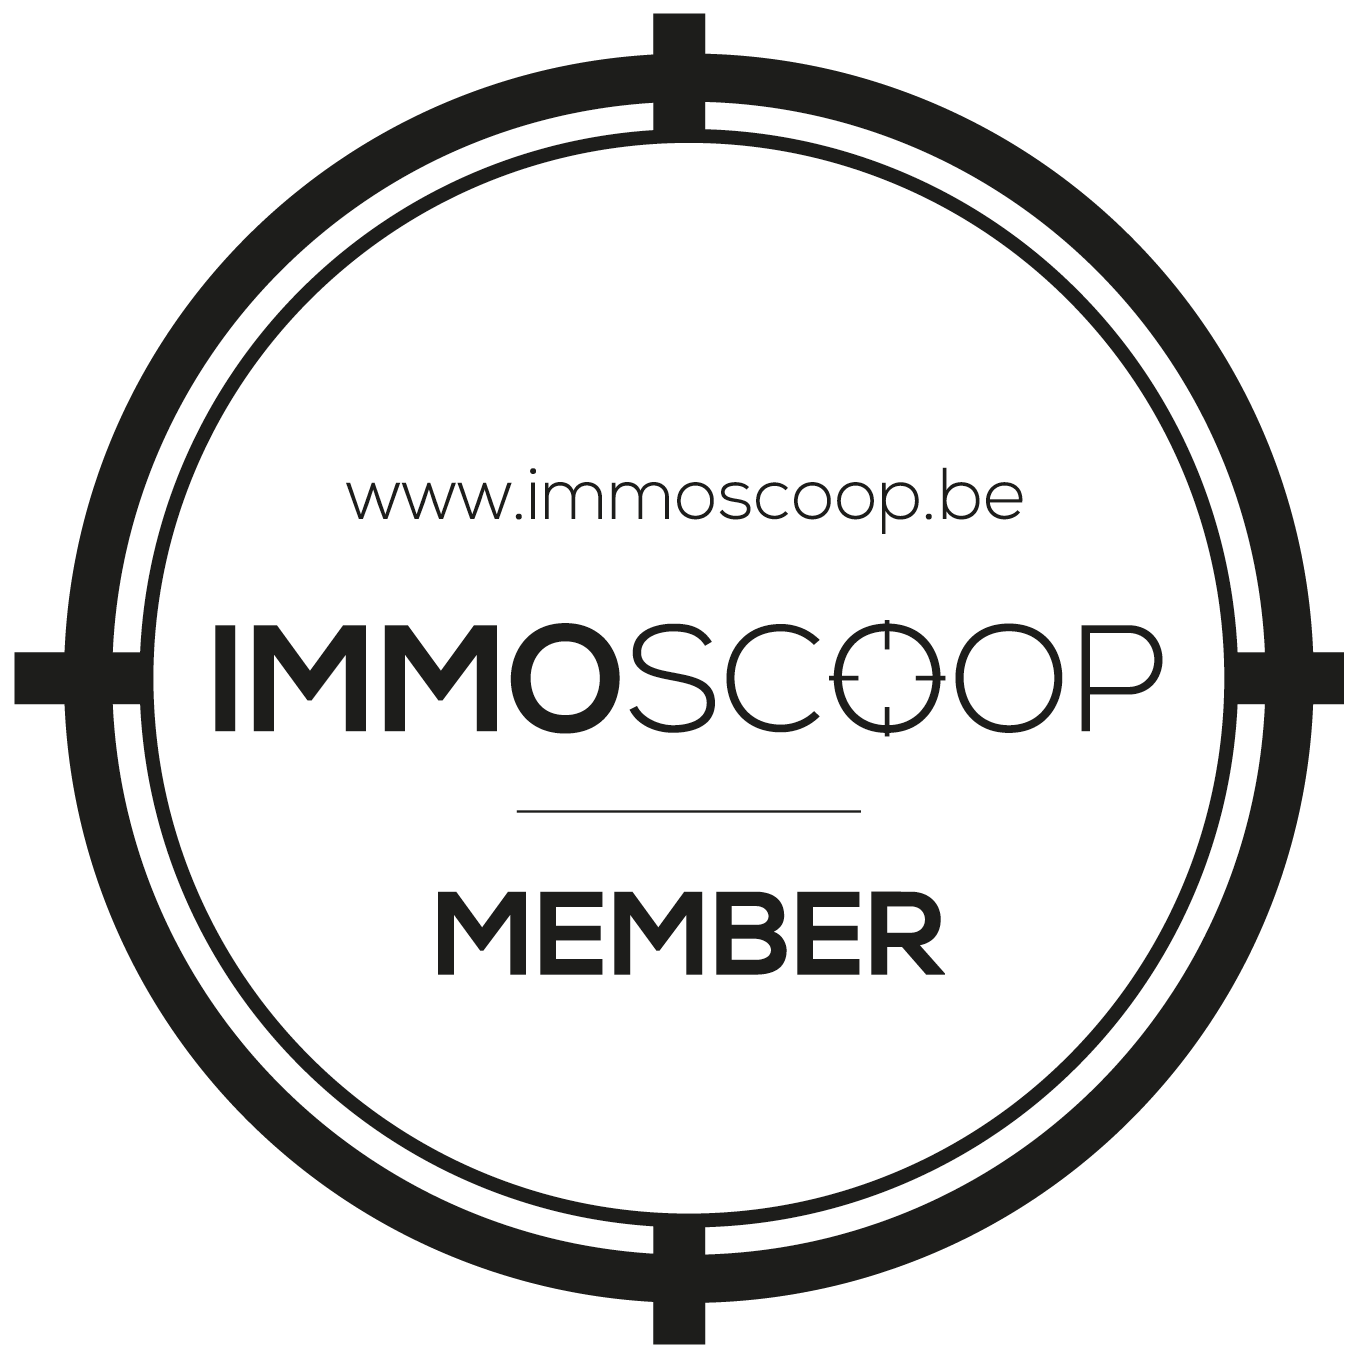 Logo Immoscoop Member